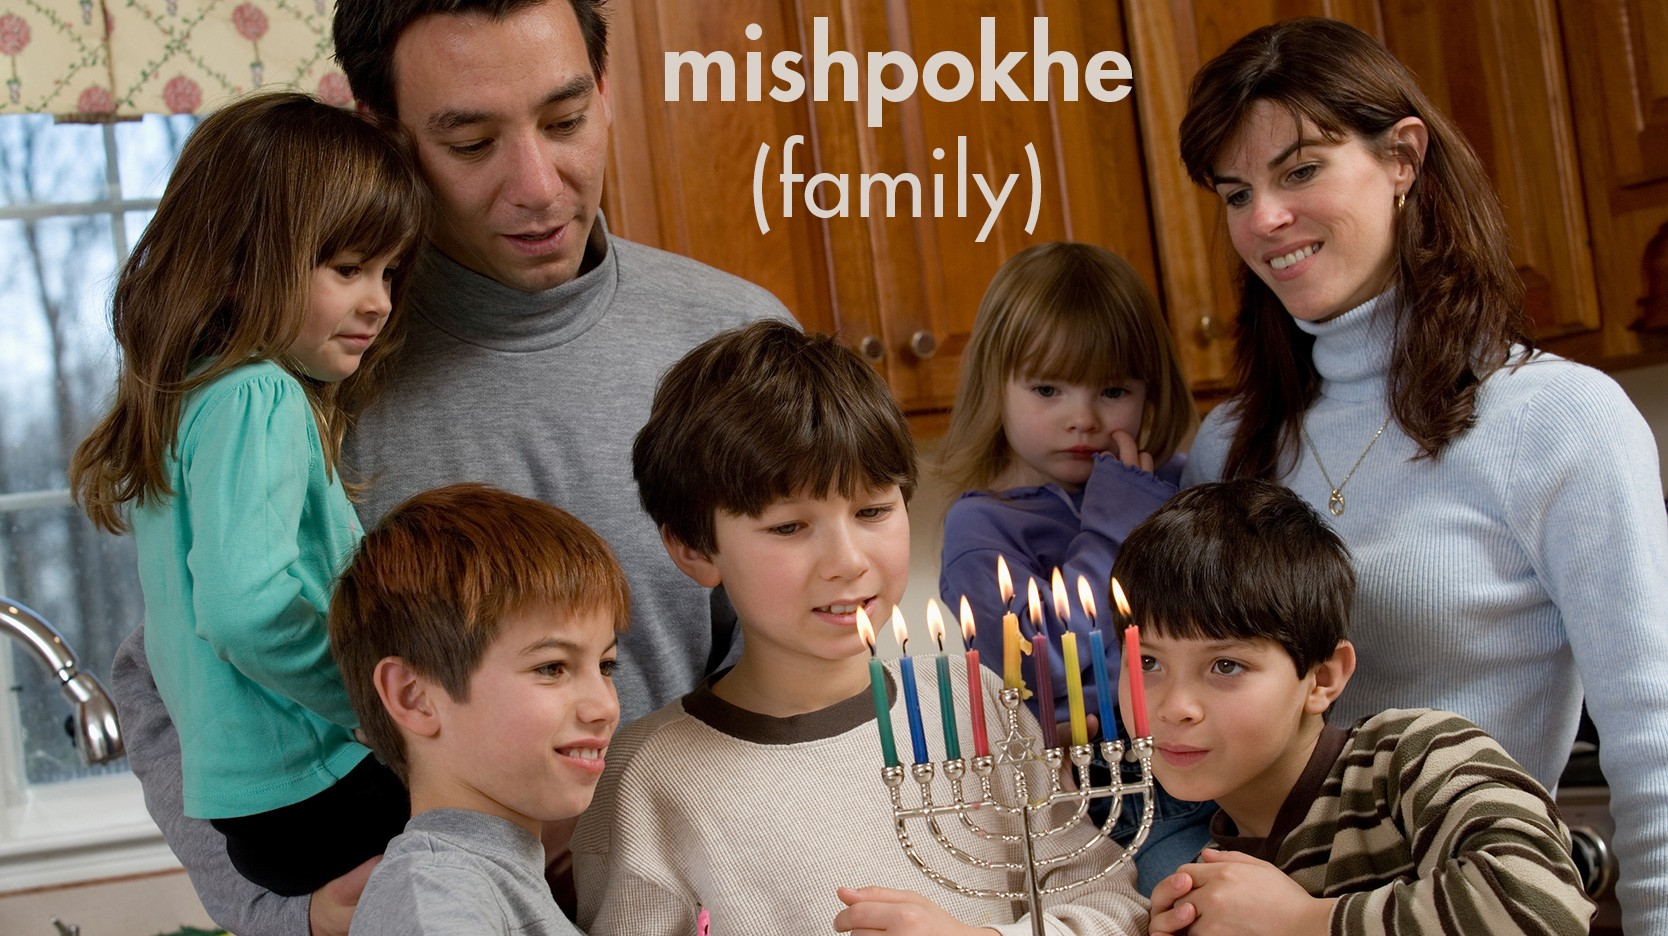 jewish word mishpokhe meaning family